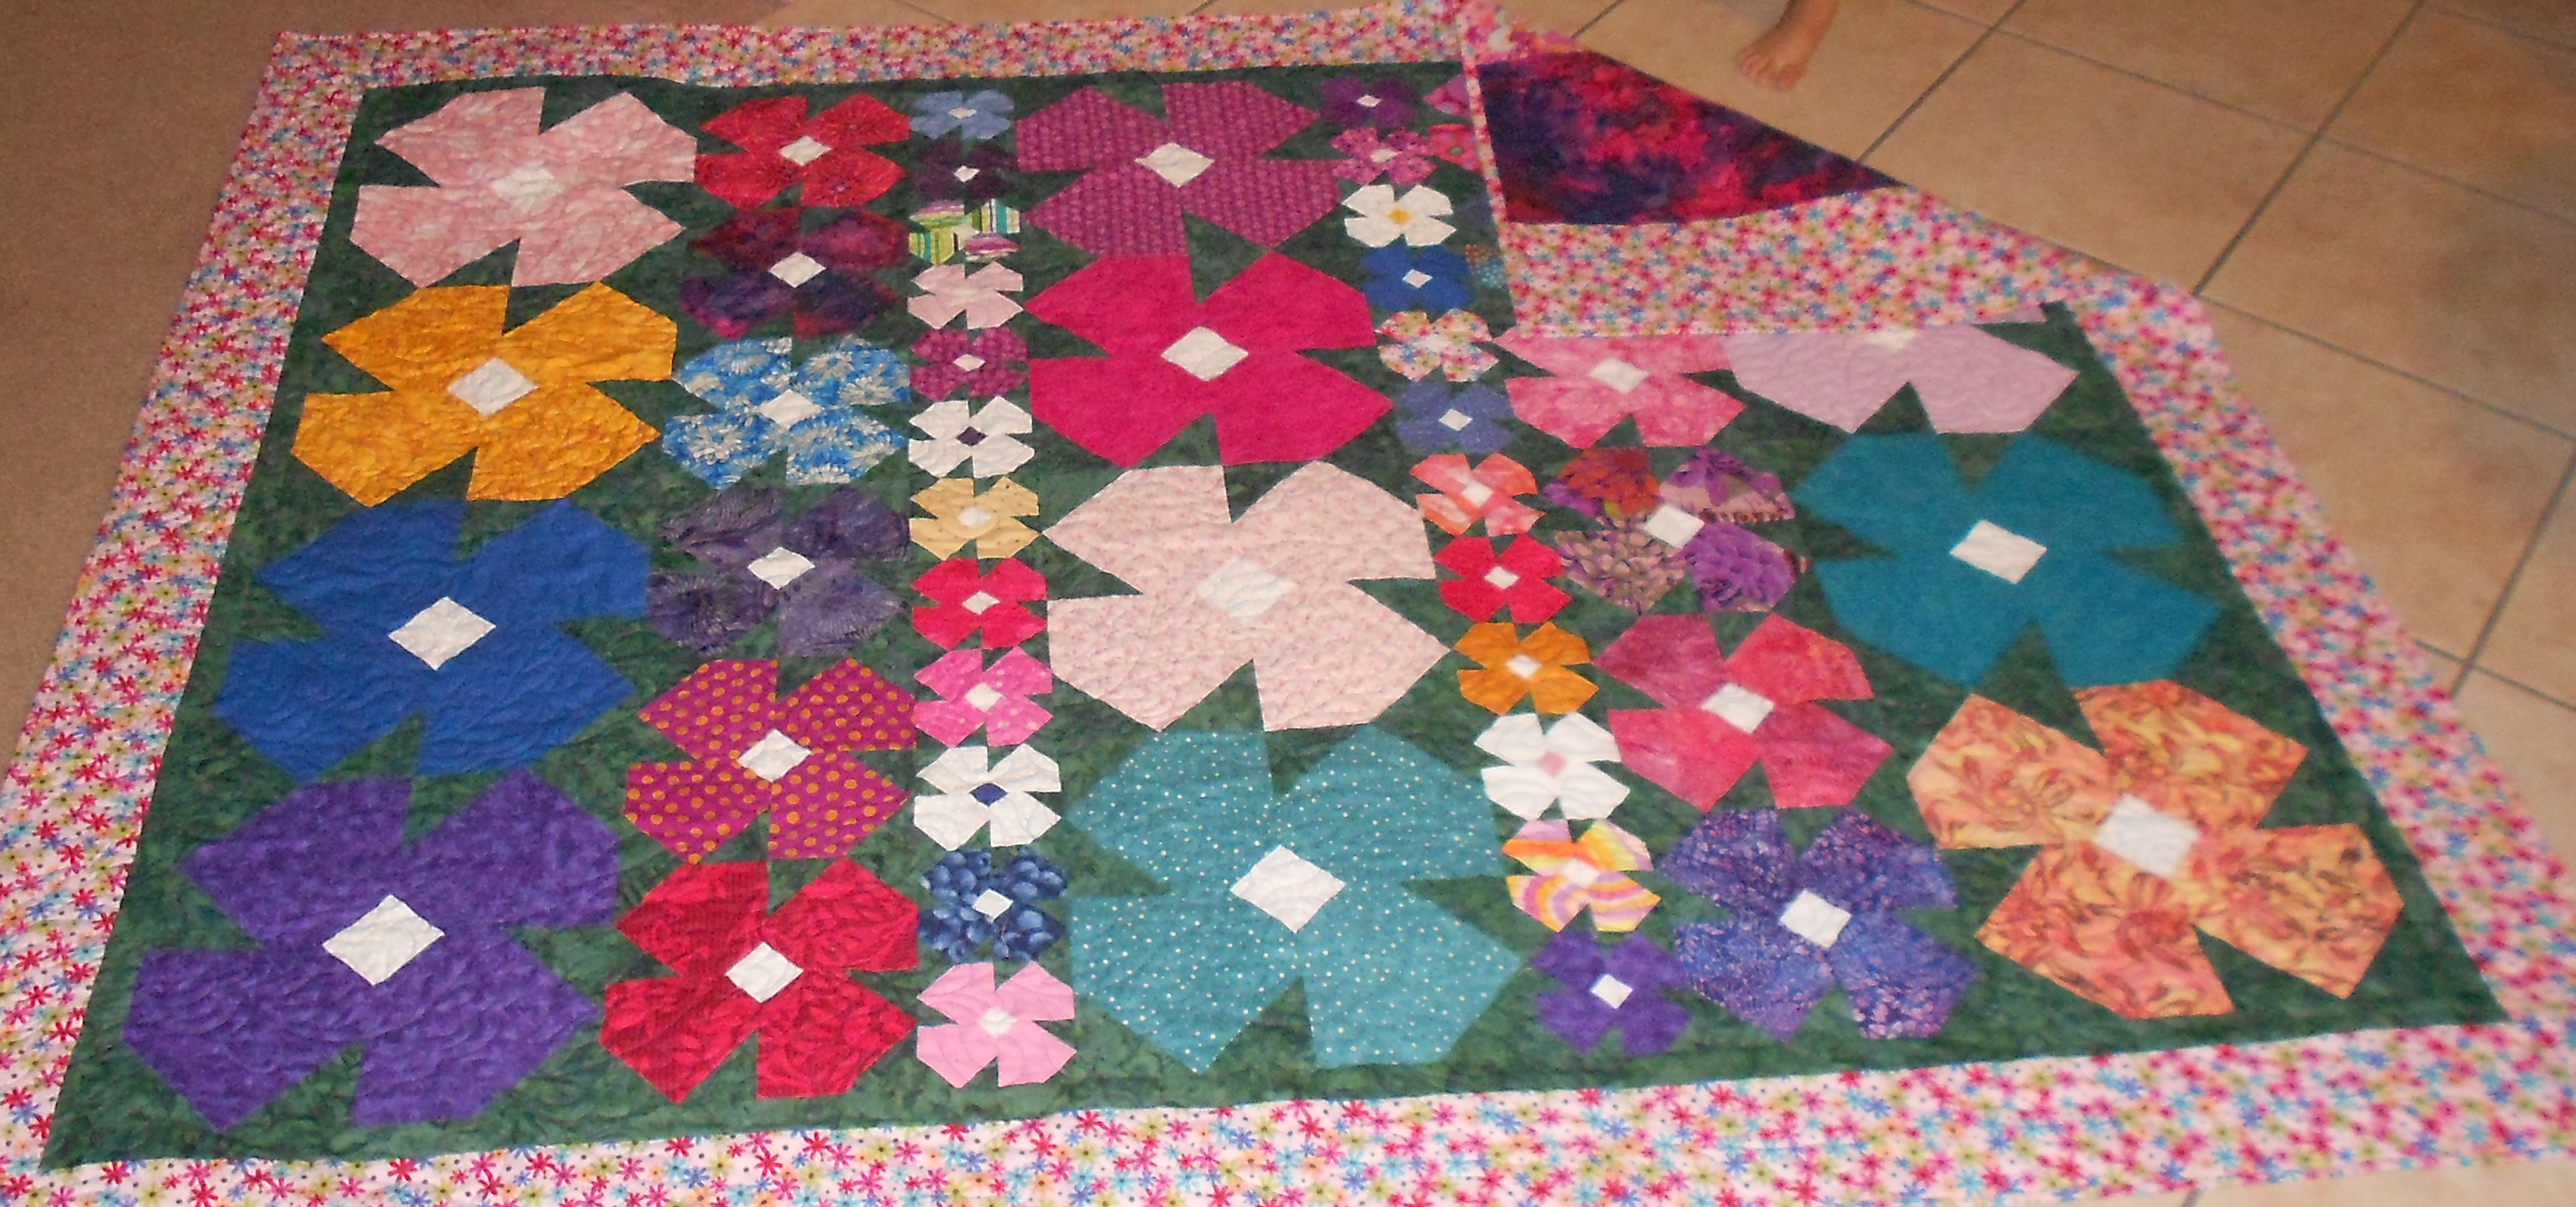 Garden quilt blocks : Putting the different sized blocks into rows is one way to solve